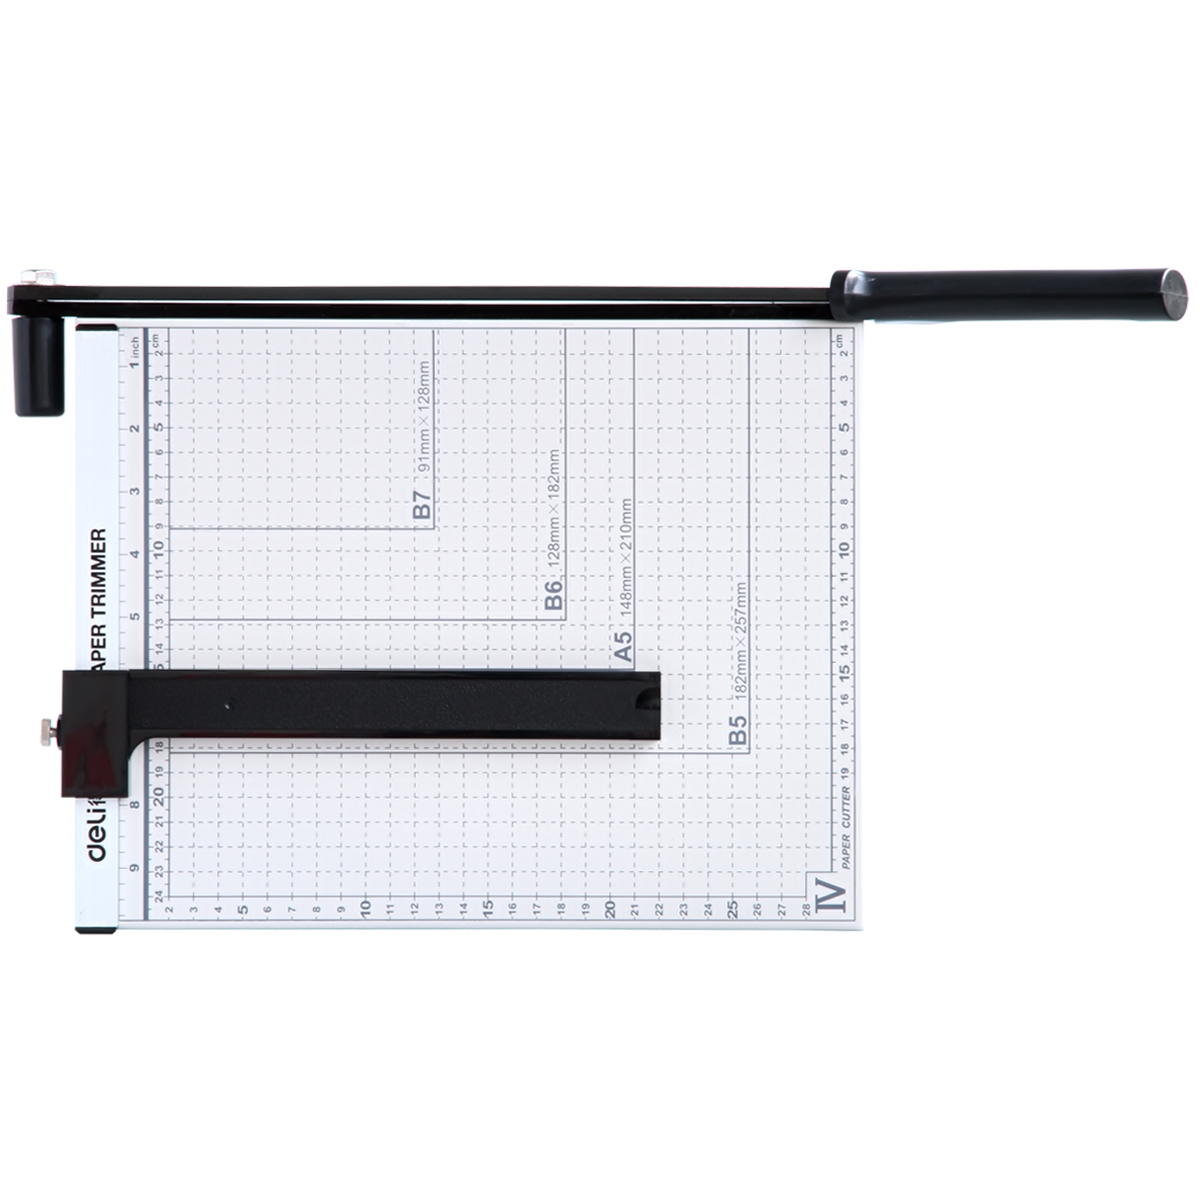 paper cutter buying guide Shop 36'' x 700' 40# white butcher paper roll bulman a45-36 36 jumbo paper cutter with straight edge types of food wrapping paper folding table buying guide.